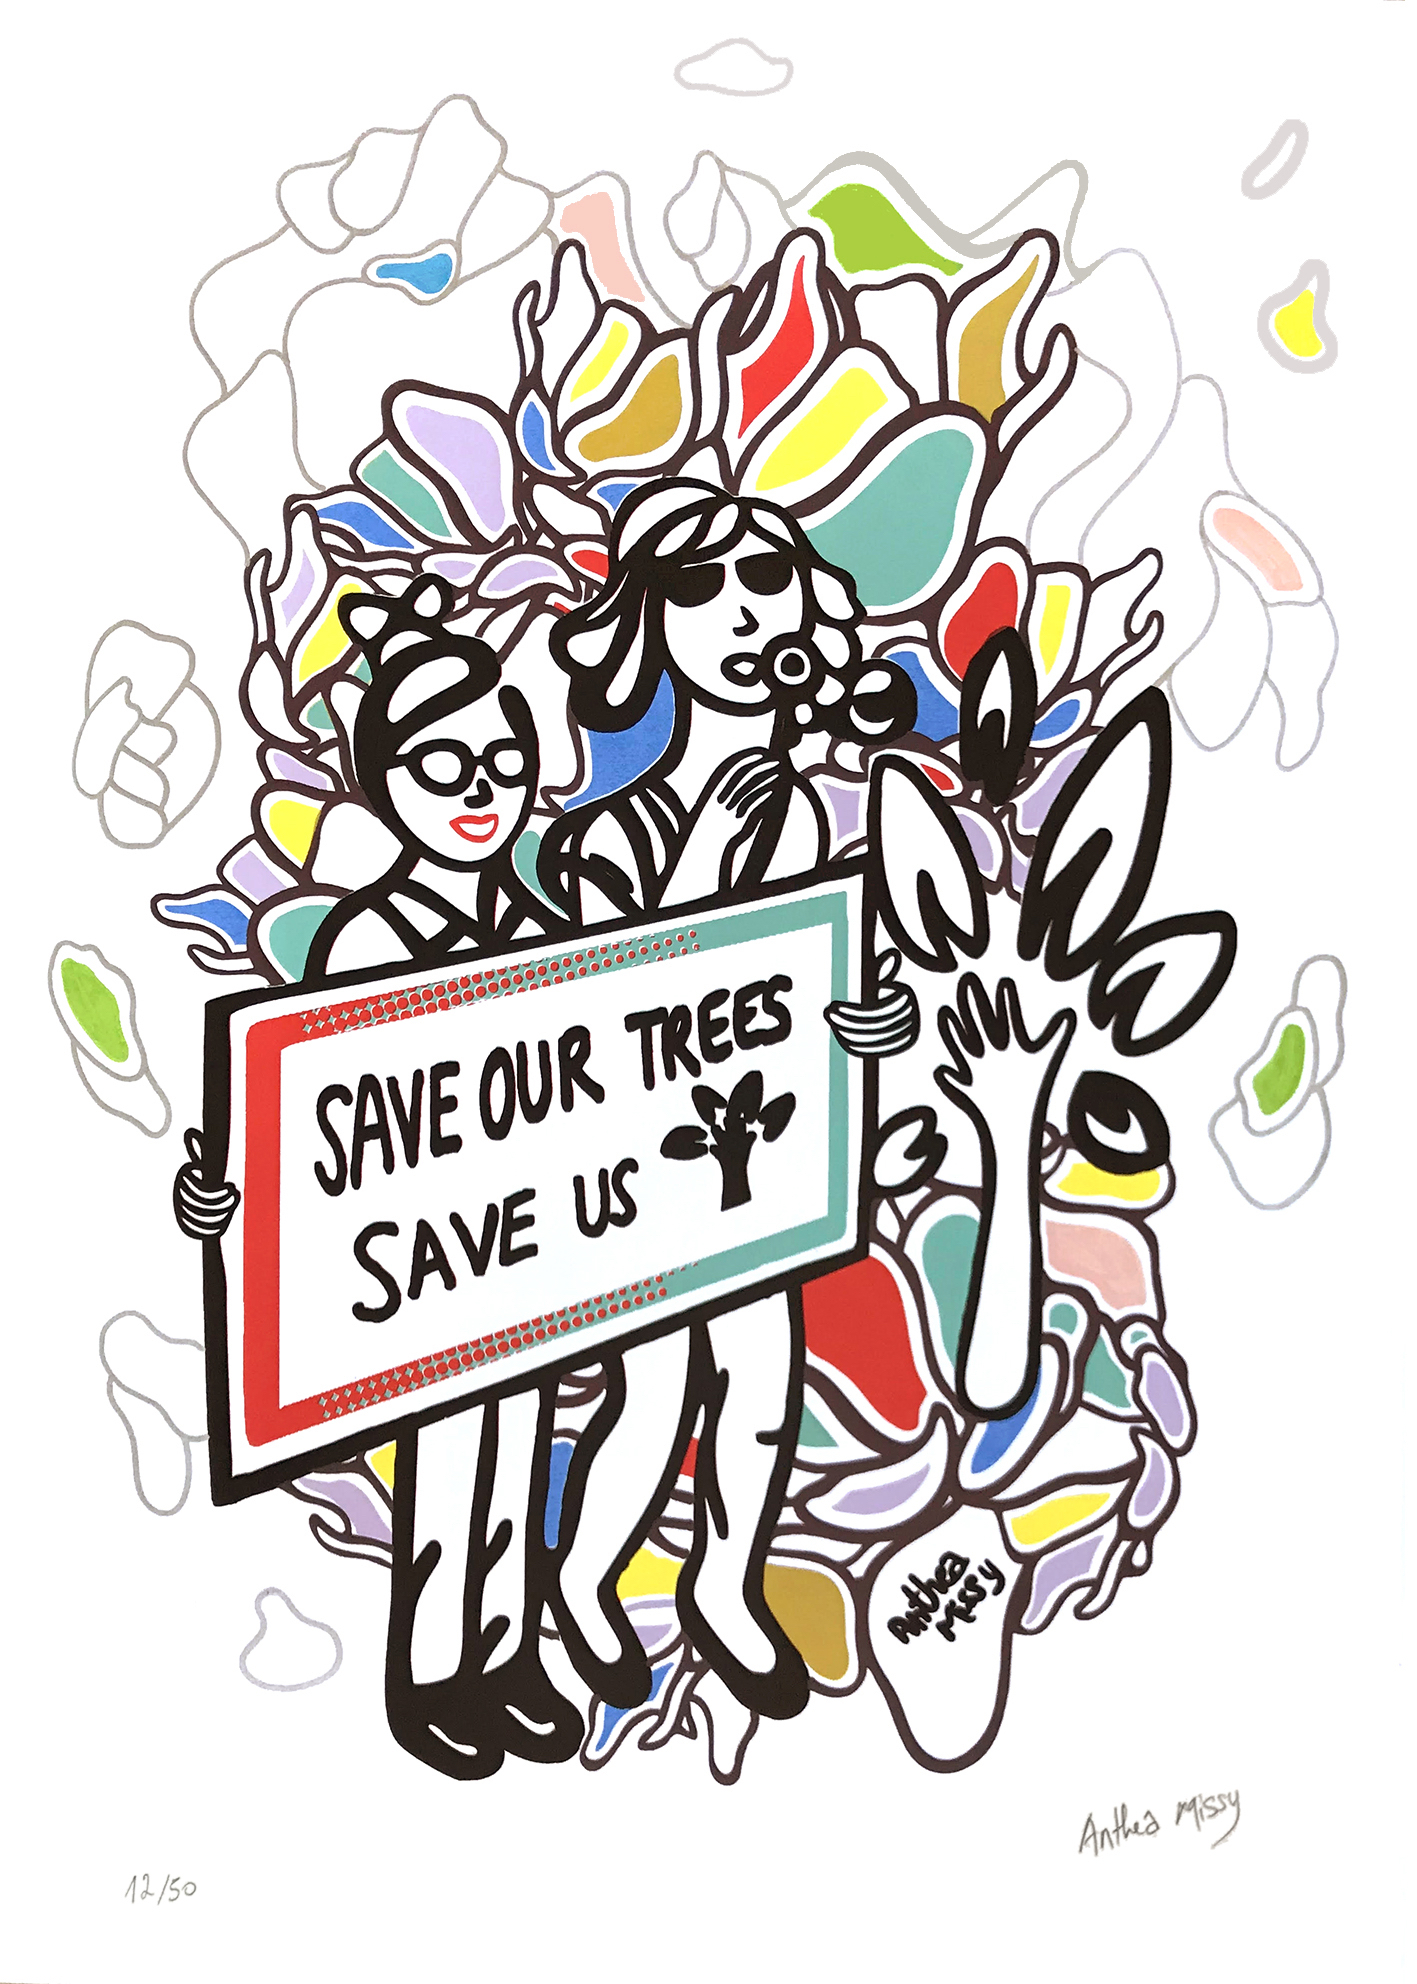 Anthea Missy - Save Our Trees, Save Us.jpg